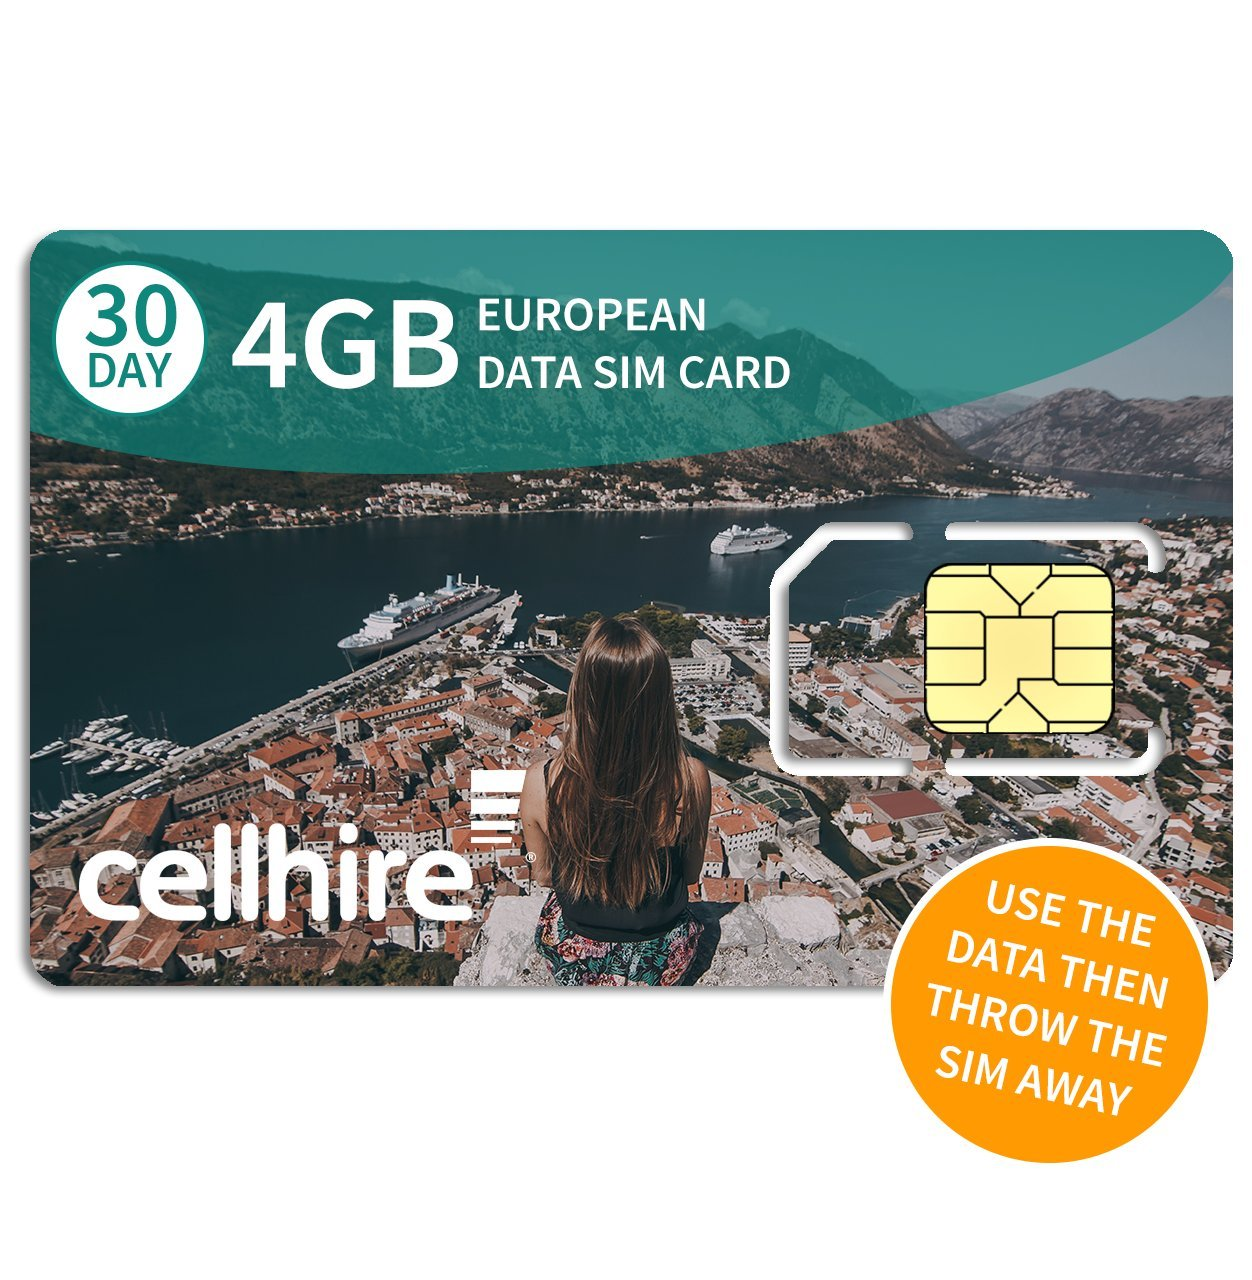 Cellhire Prepaid 4G Europe Data SIM Card - Europe 4GB Bundle - 29 countries - 3-in-1 SIM by Cellhire (Image #1)